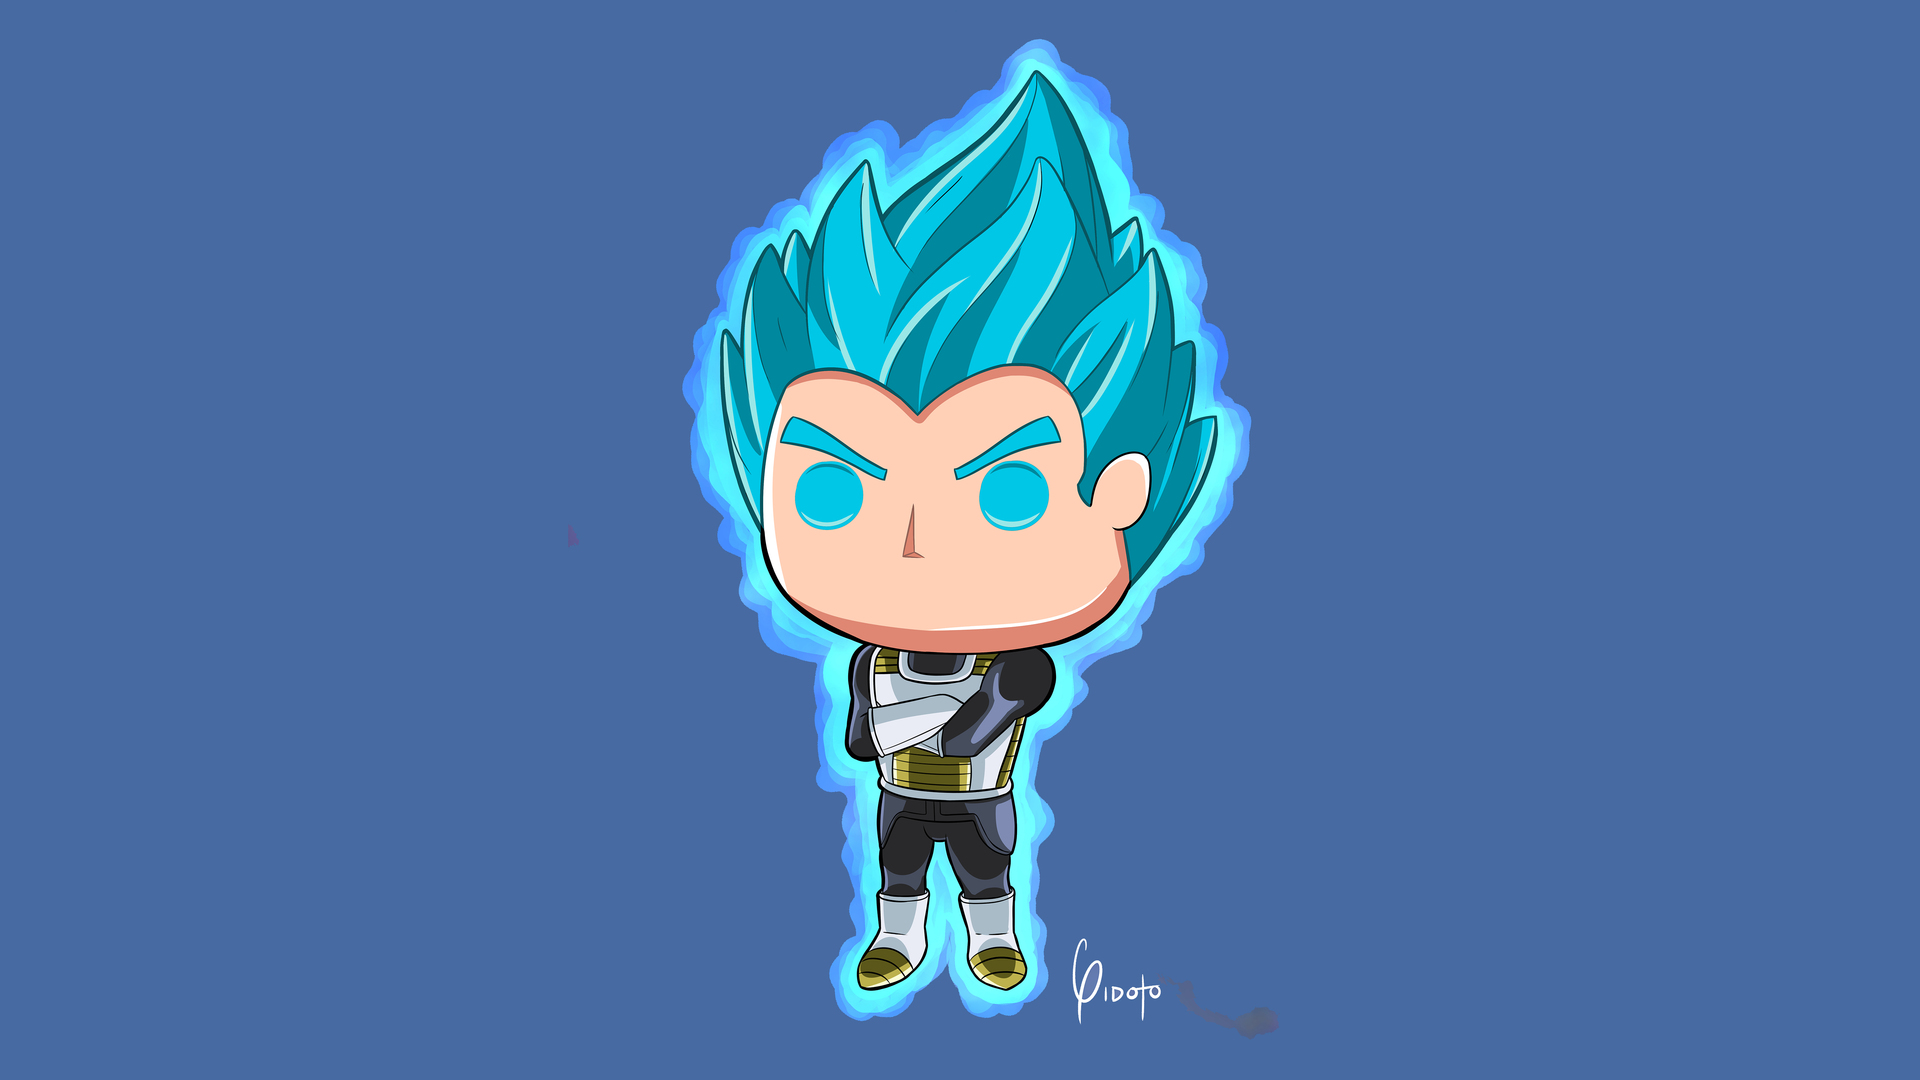 Vegeta Dragon Ball Super 5k Artwork Yx